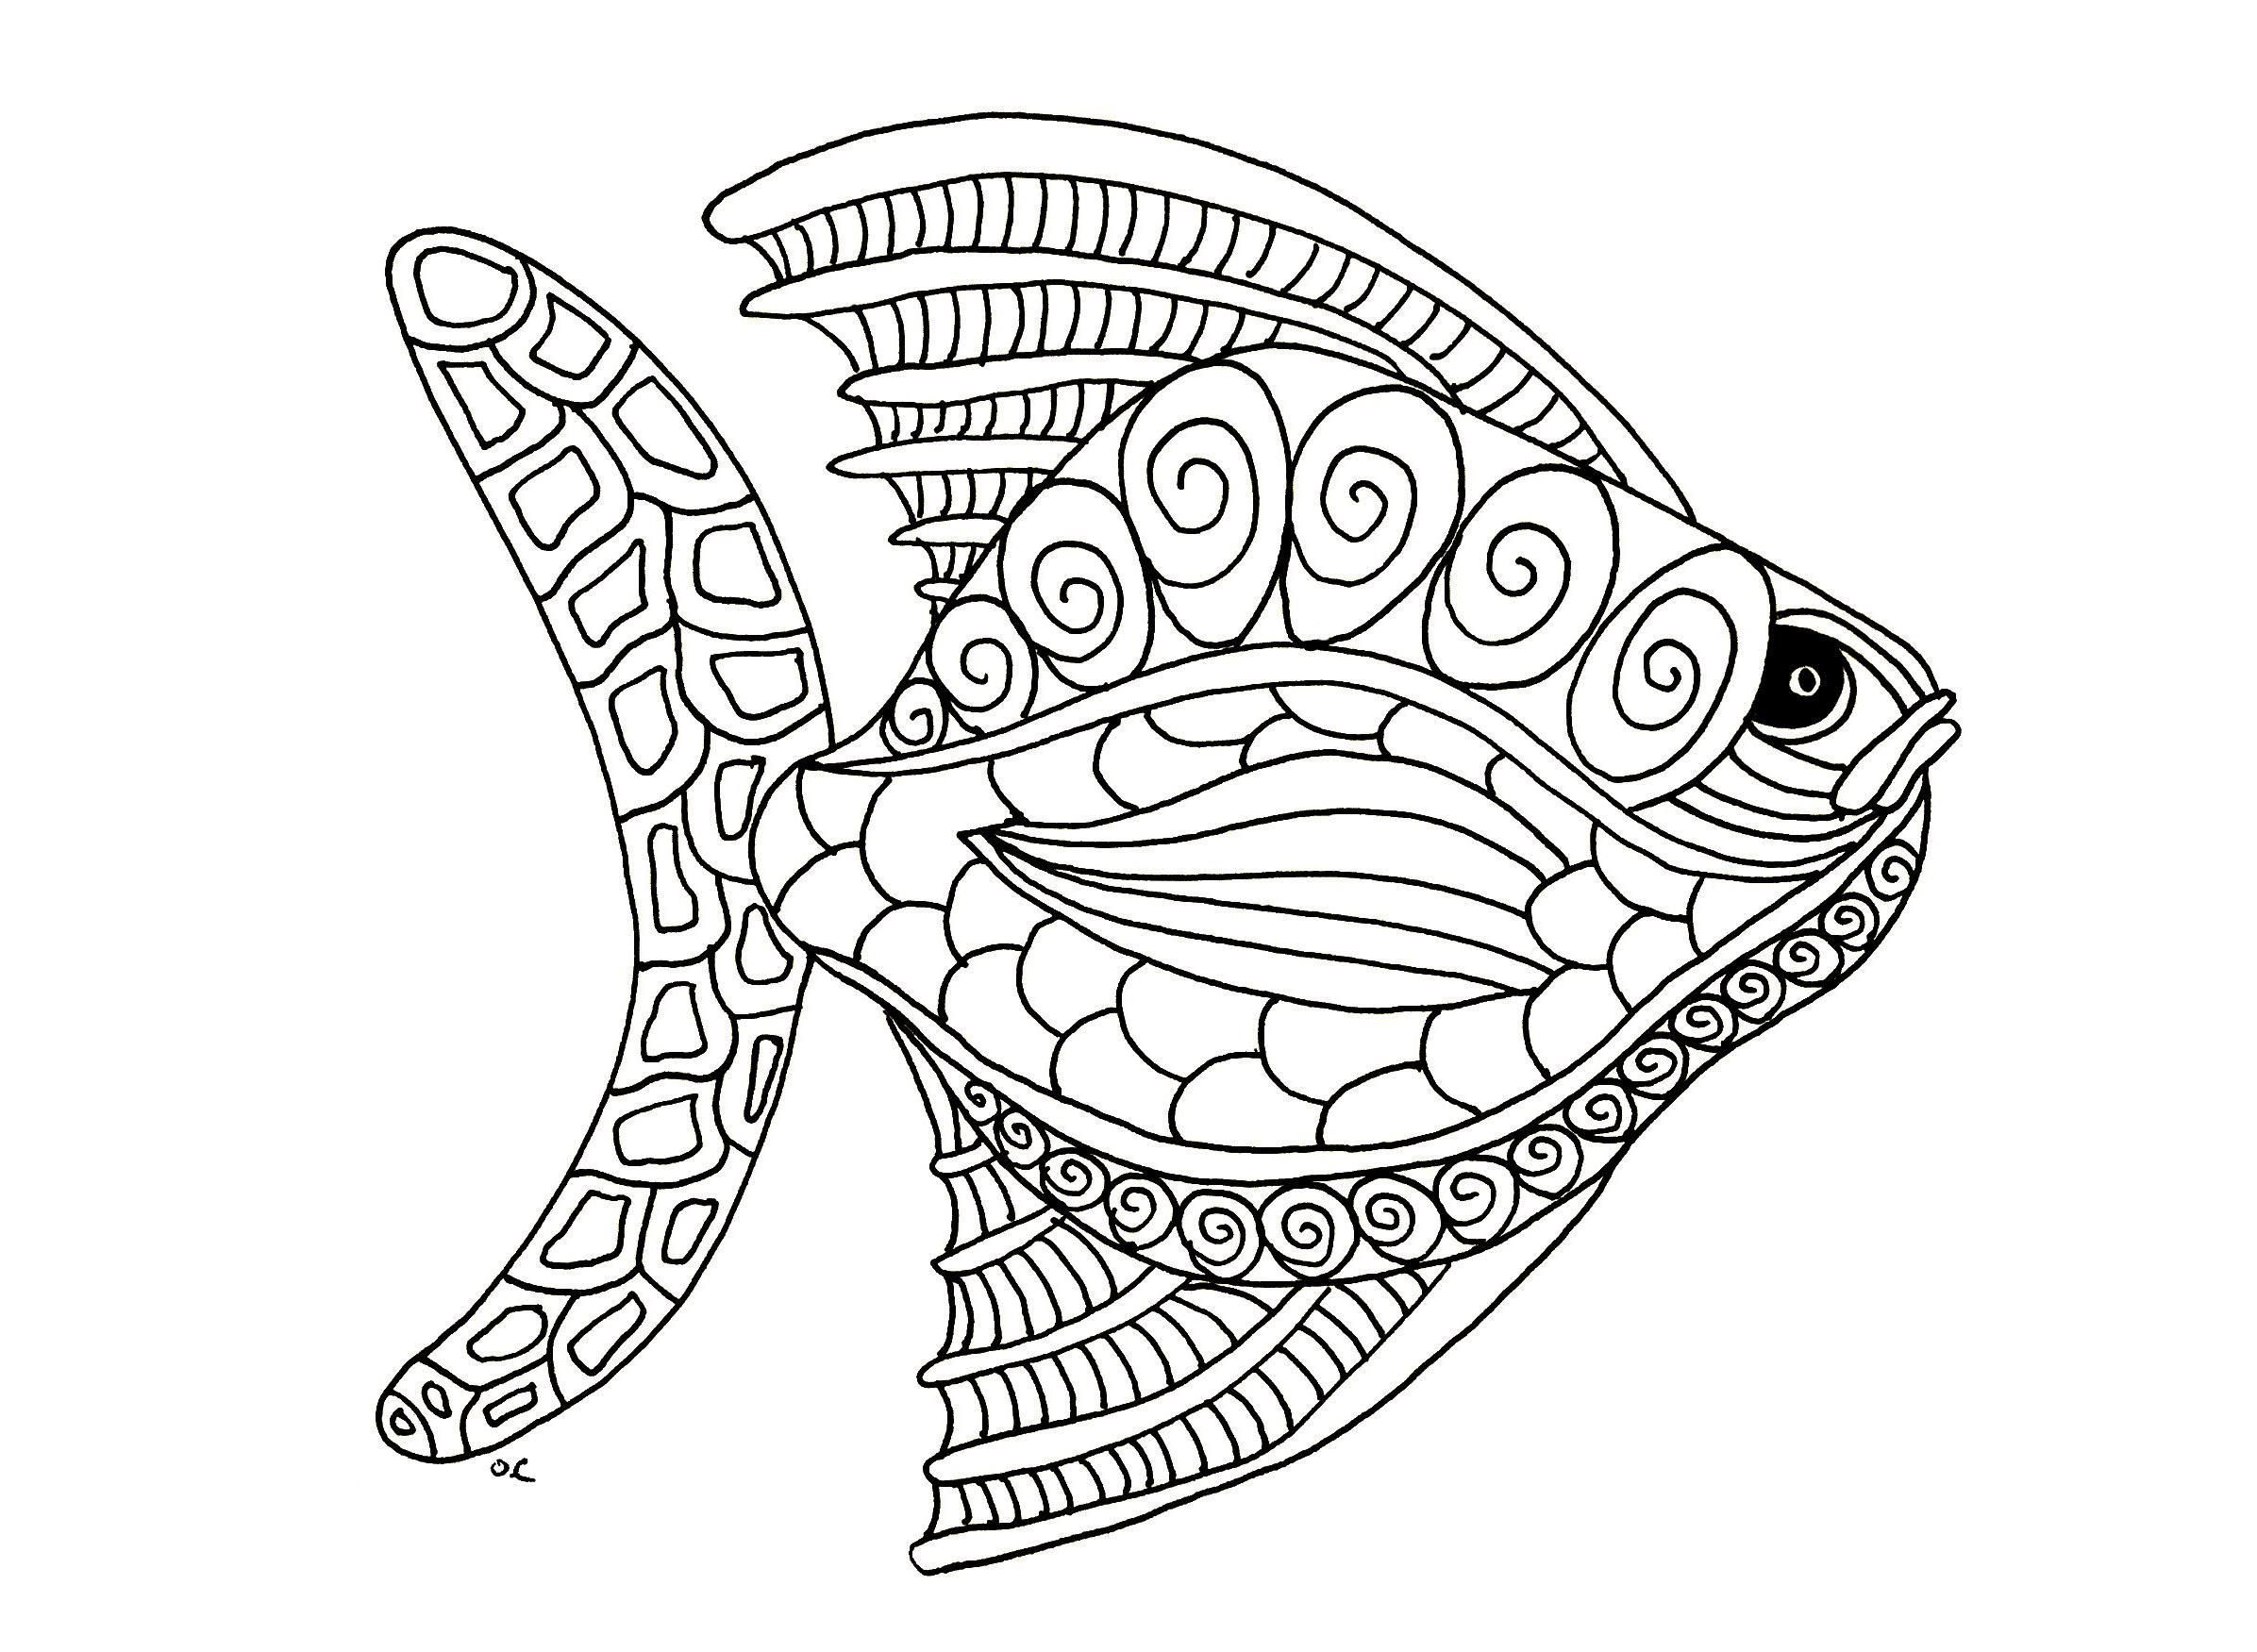 38 Free Printable Fish Coloring Pages For Adults Snake Coloring Pages Animal Coloring Pages Animal Coloring Books